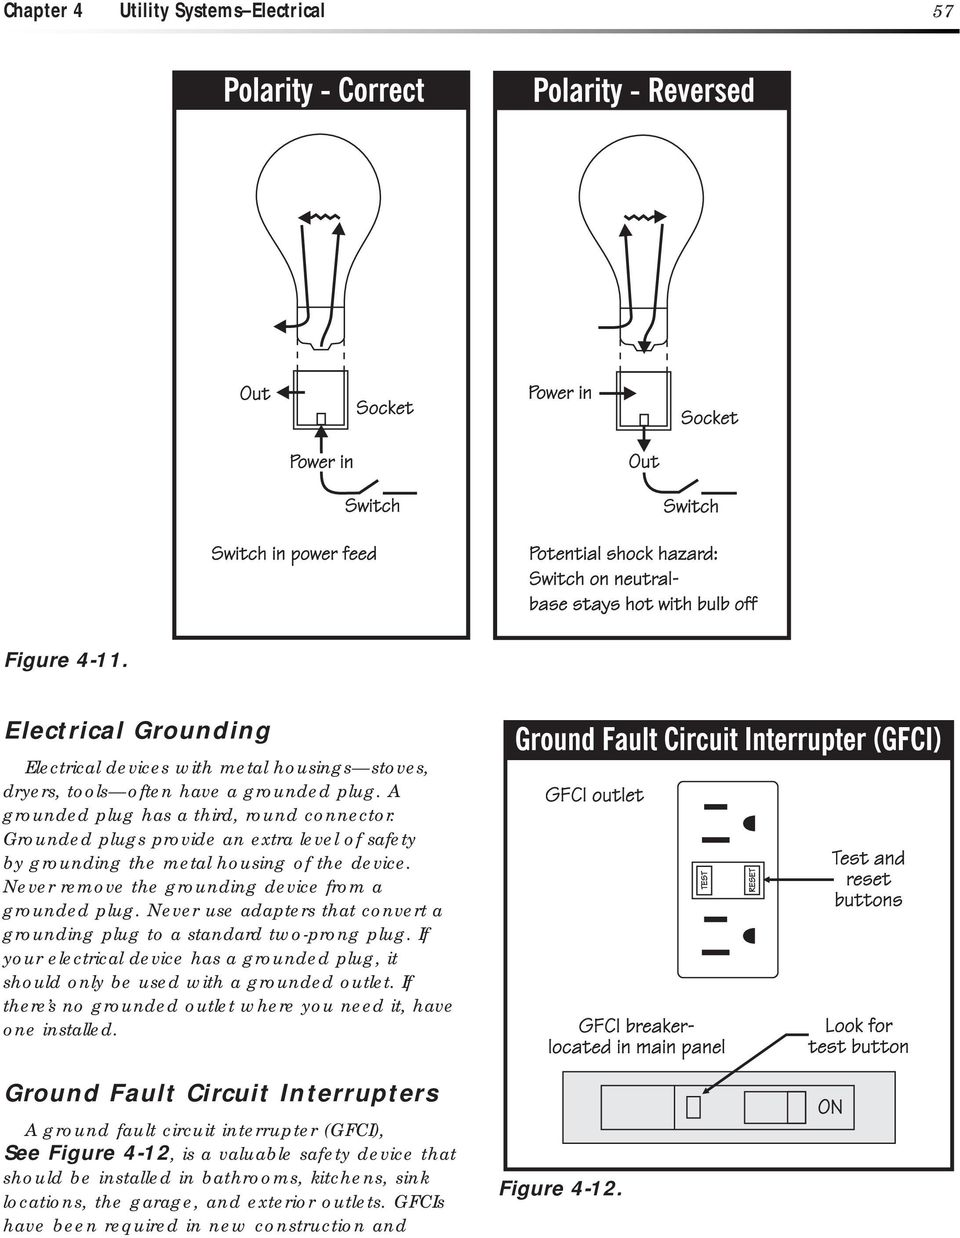 Chapter 4 Utility Systems Electrical Gfci No Ground Wiring Diagram Never Use Adapters That Convert A Grounding Plug To Standard Two Prong